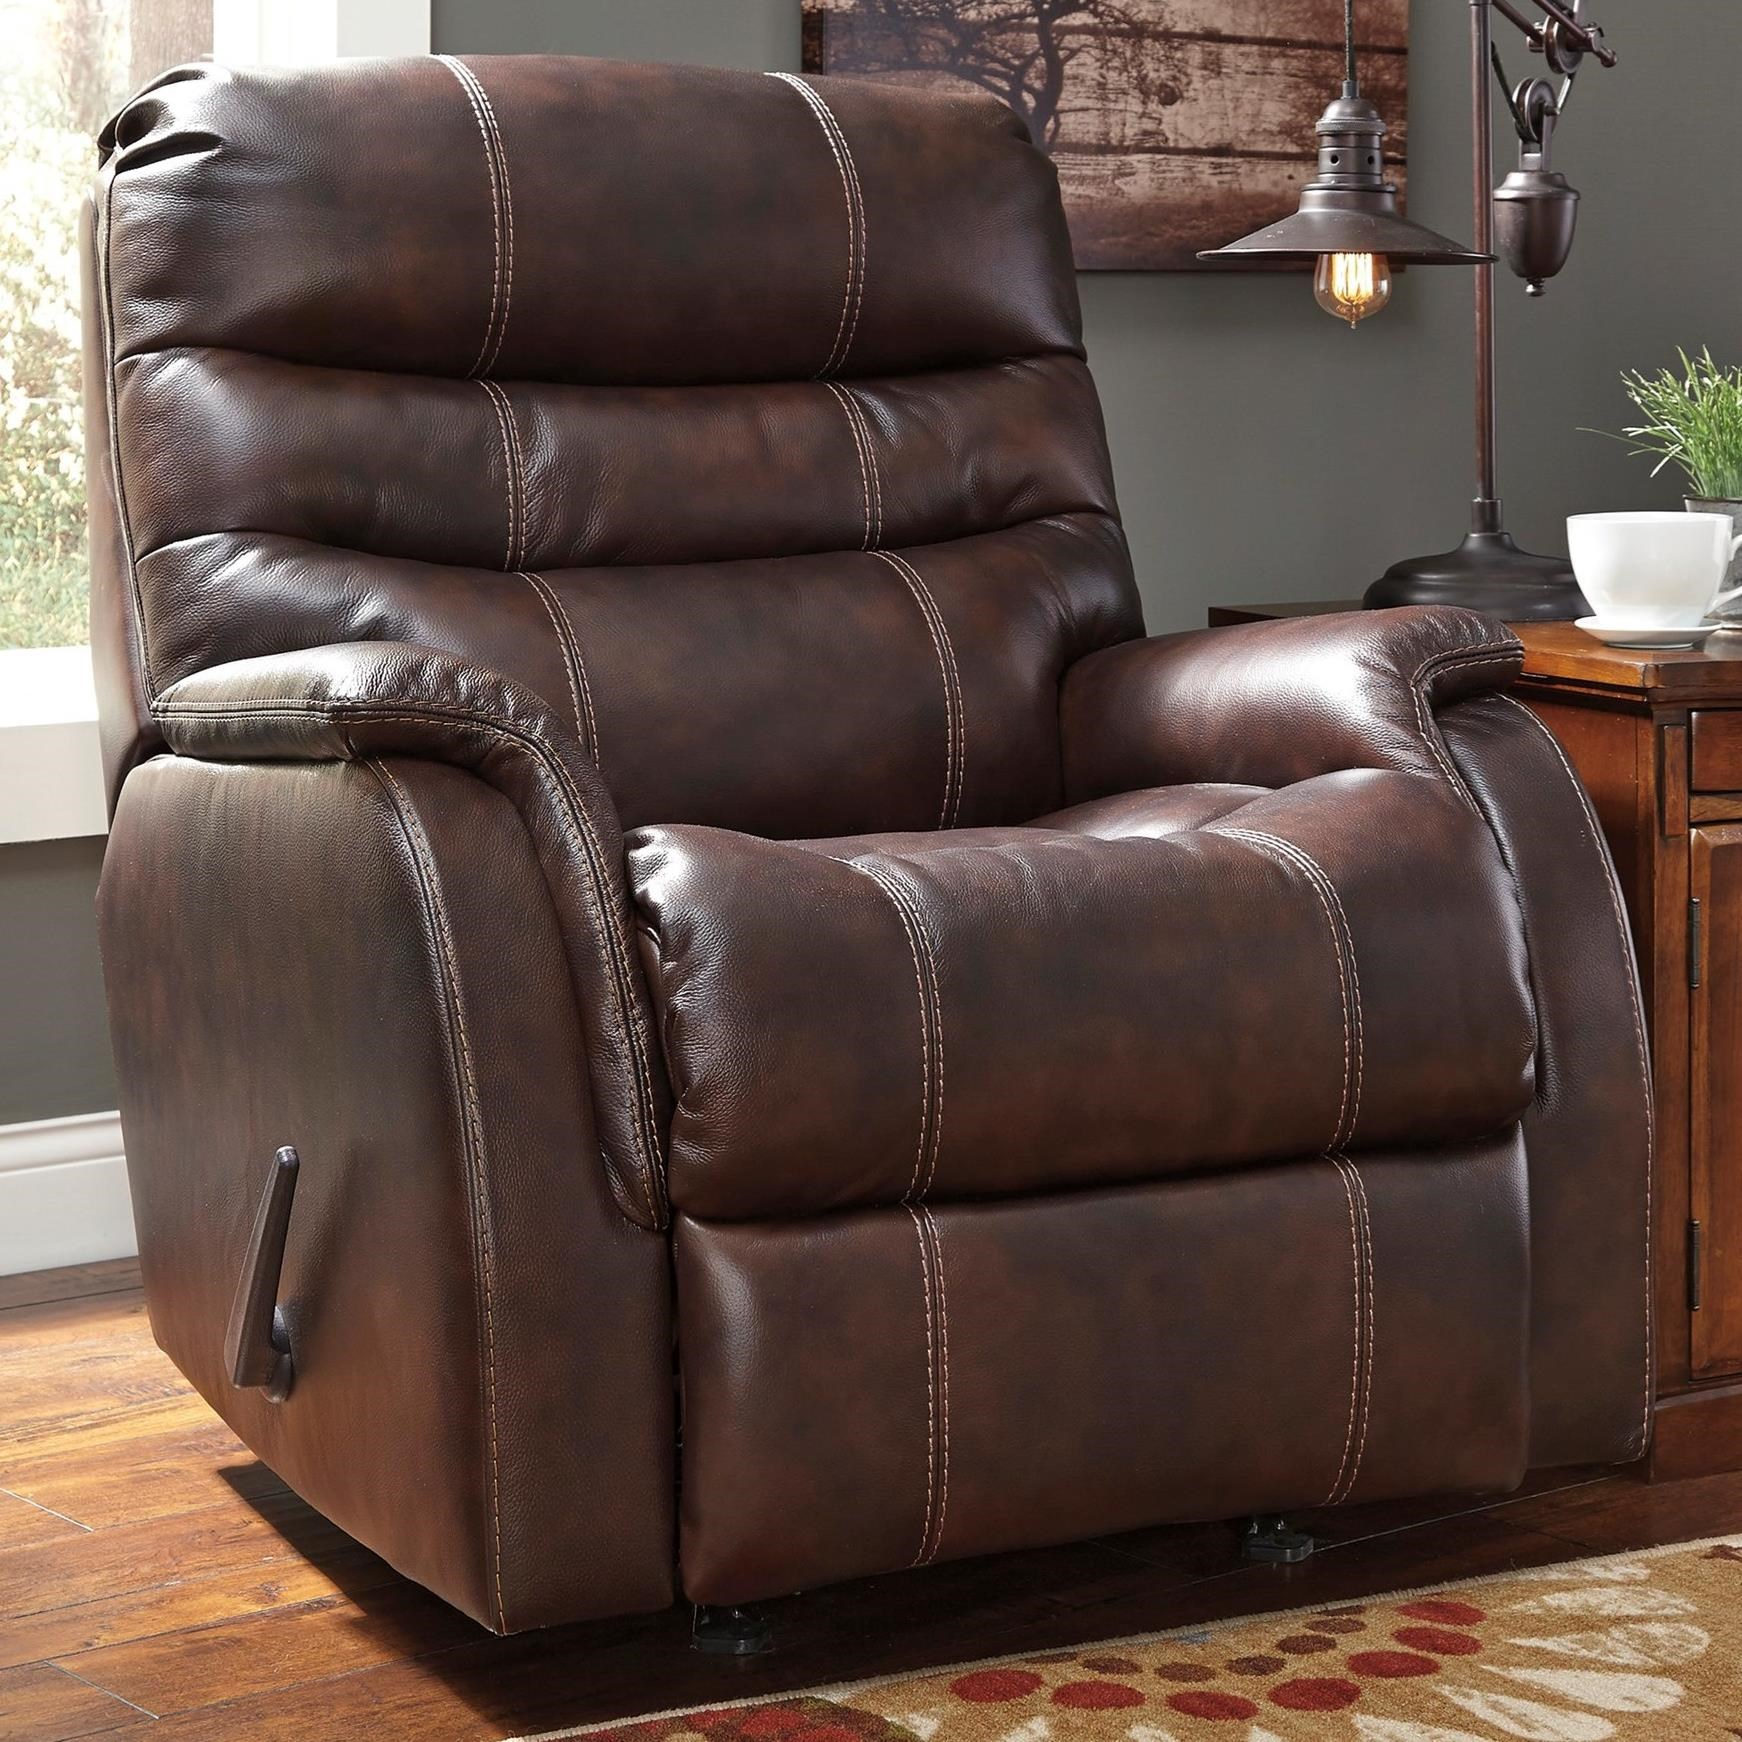 Signature Design by Ashley Bridger Rocker Recliner - Item Number: 3930025